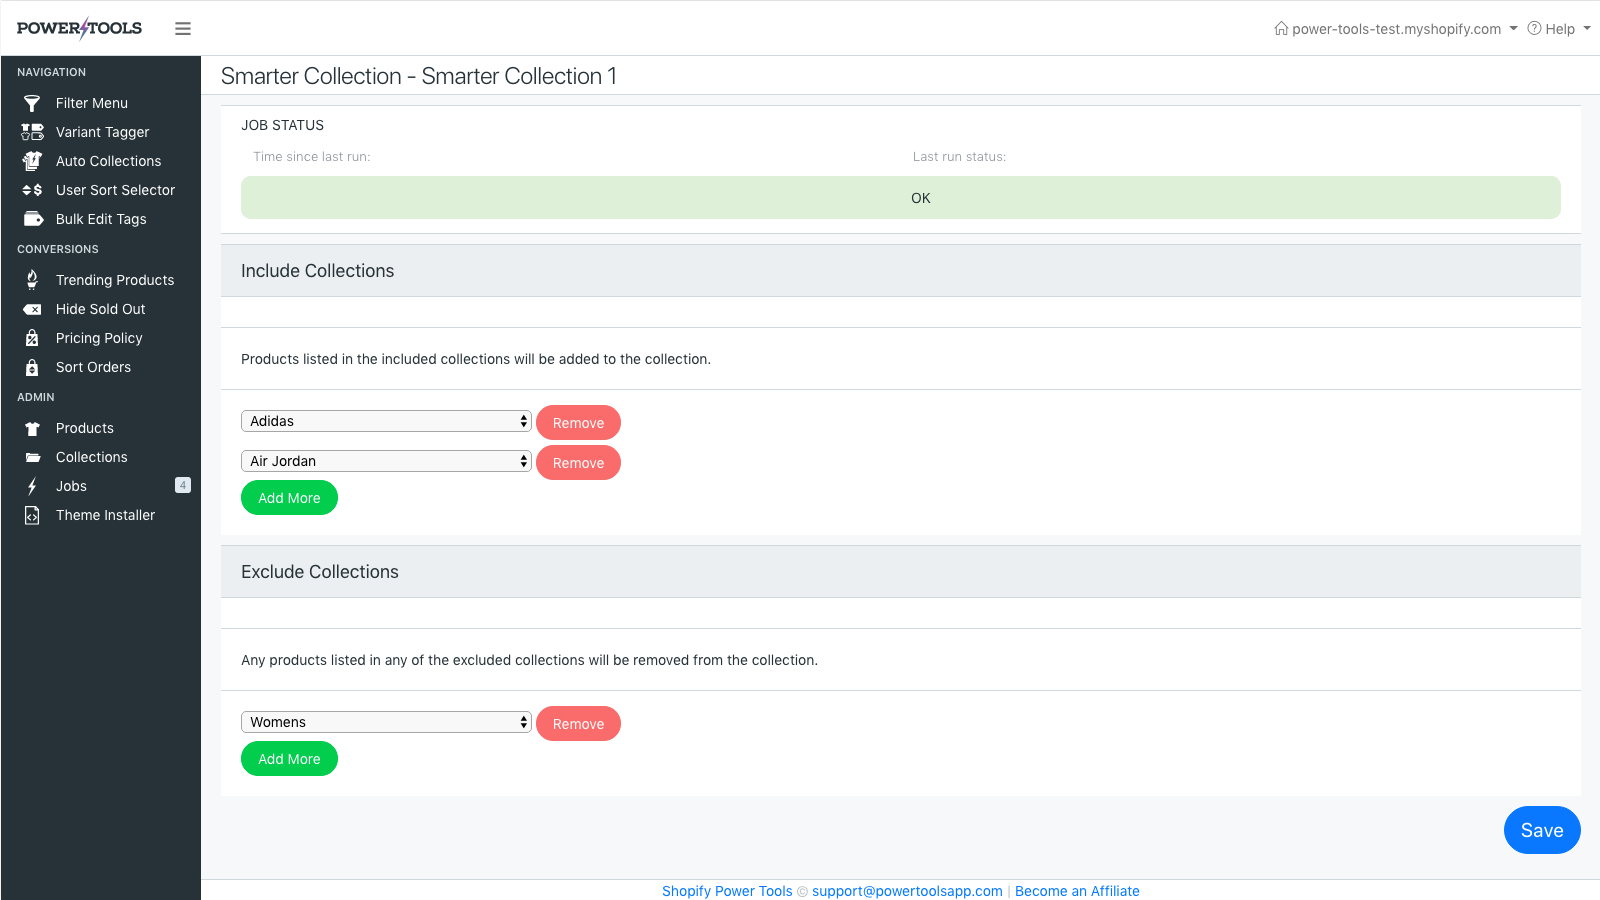 Smarter collections include and exclude other collections